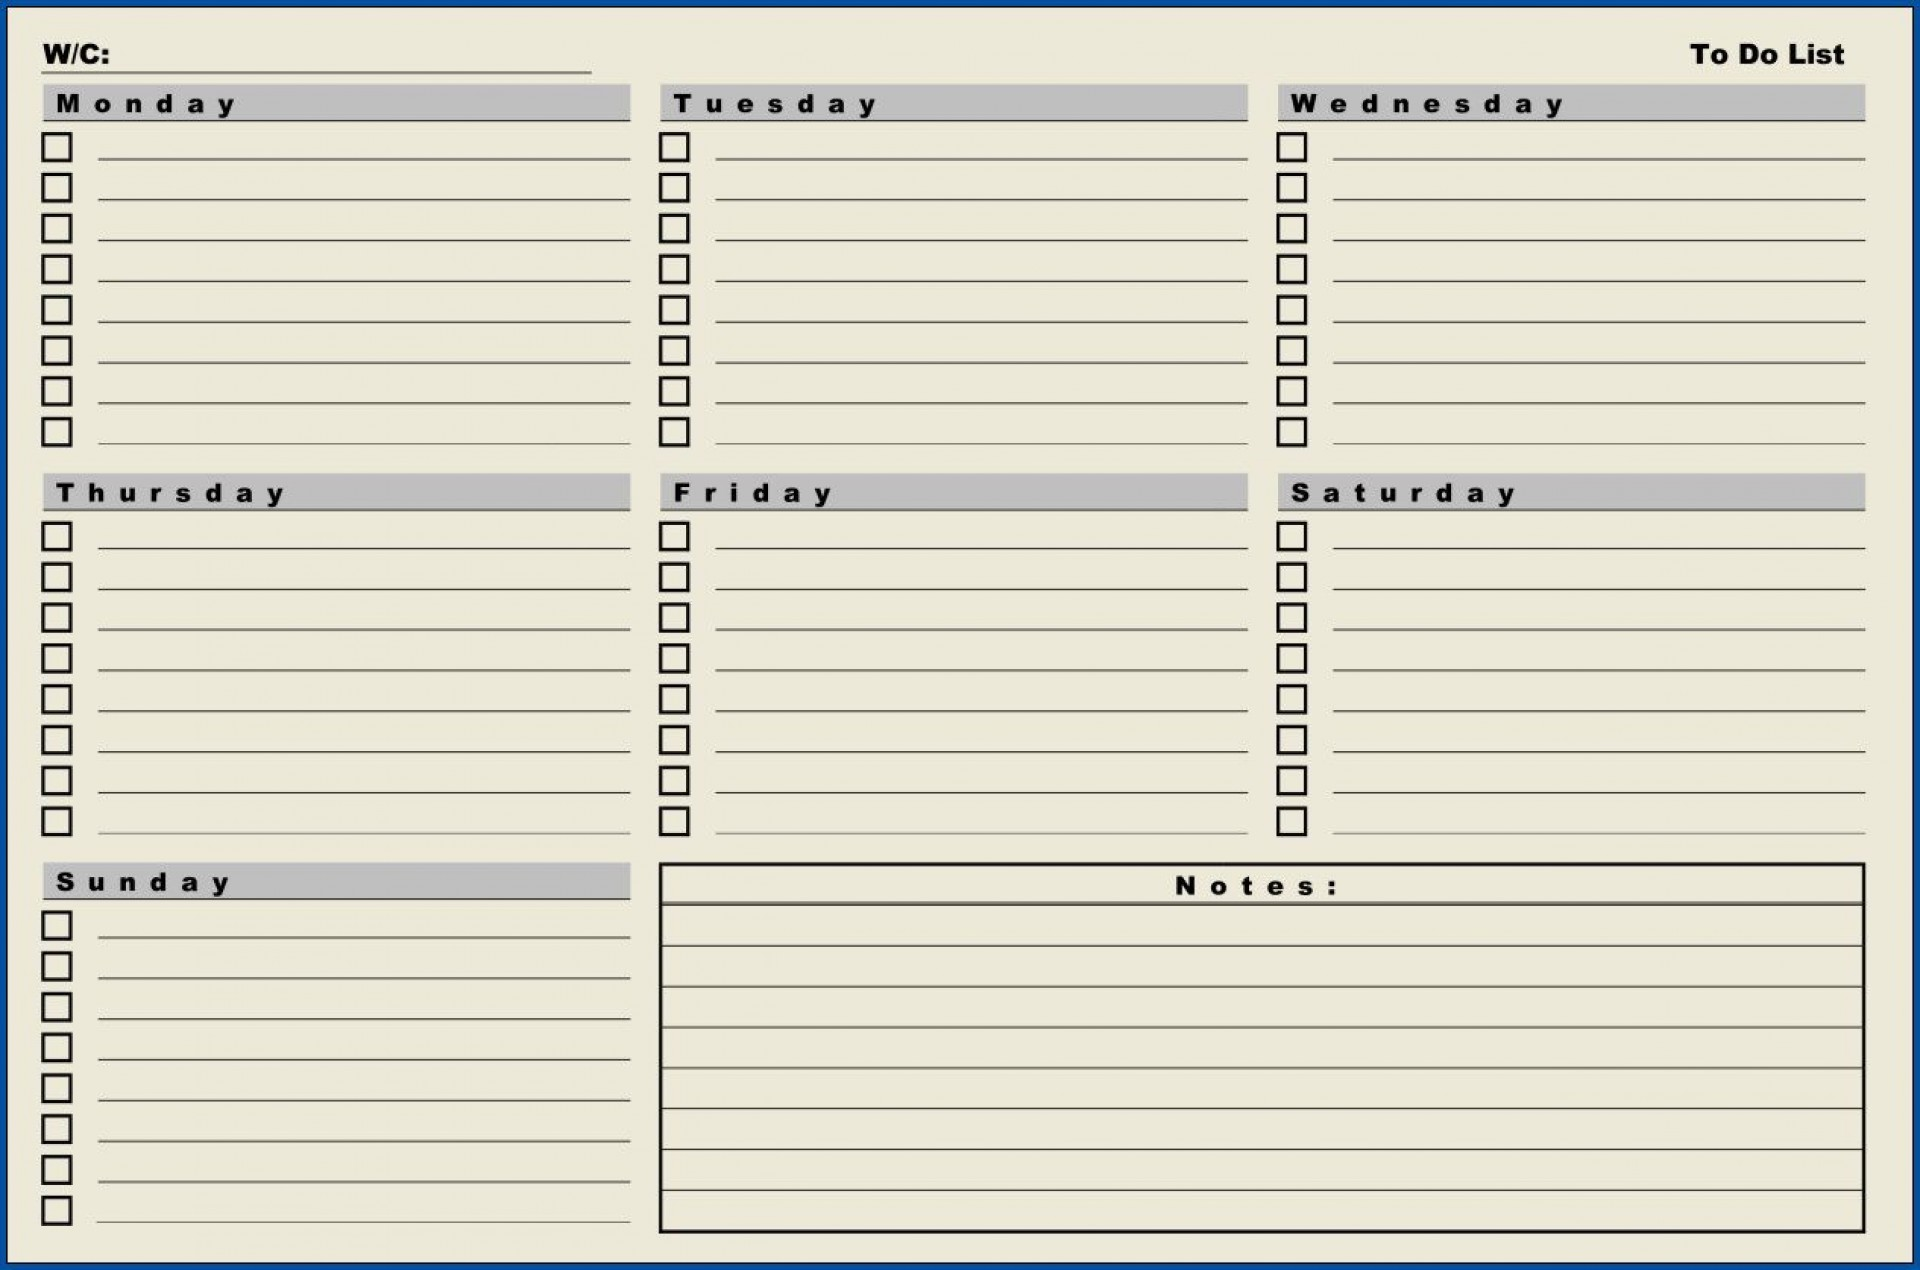 007 Amazing Weekly Todo List Template Sample  To Do Pinterest Task Excel Daily Pdf1920